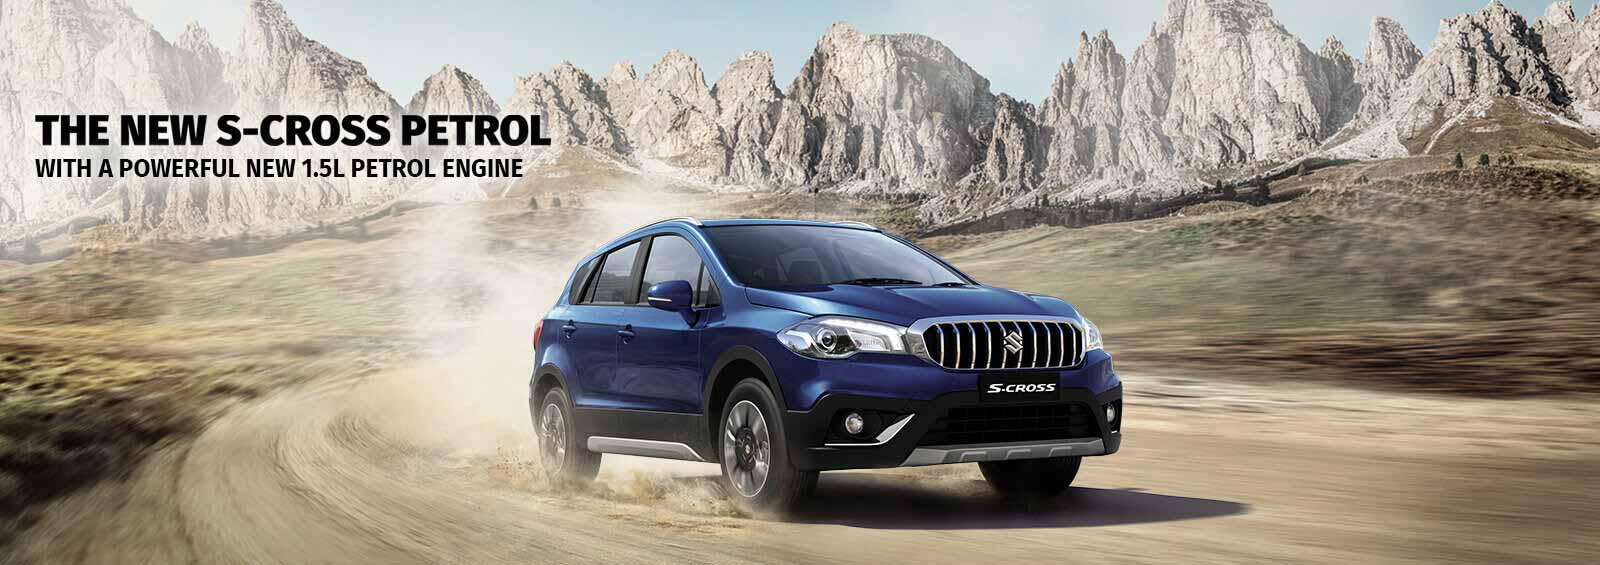 S-Cross Pasco Automobiles MG Road, Gurgaon